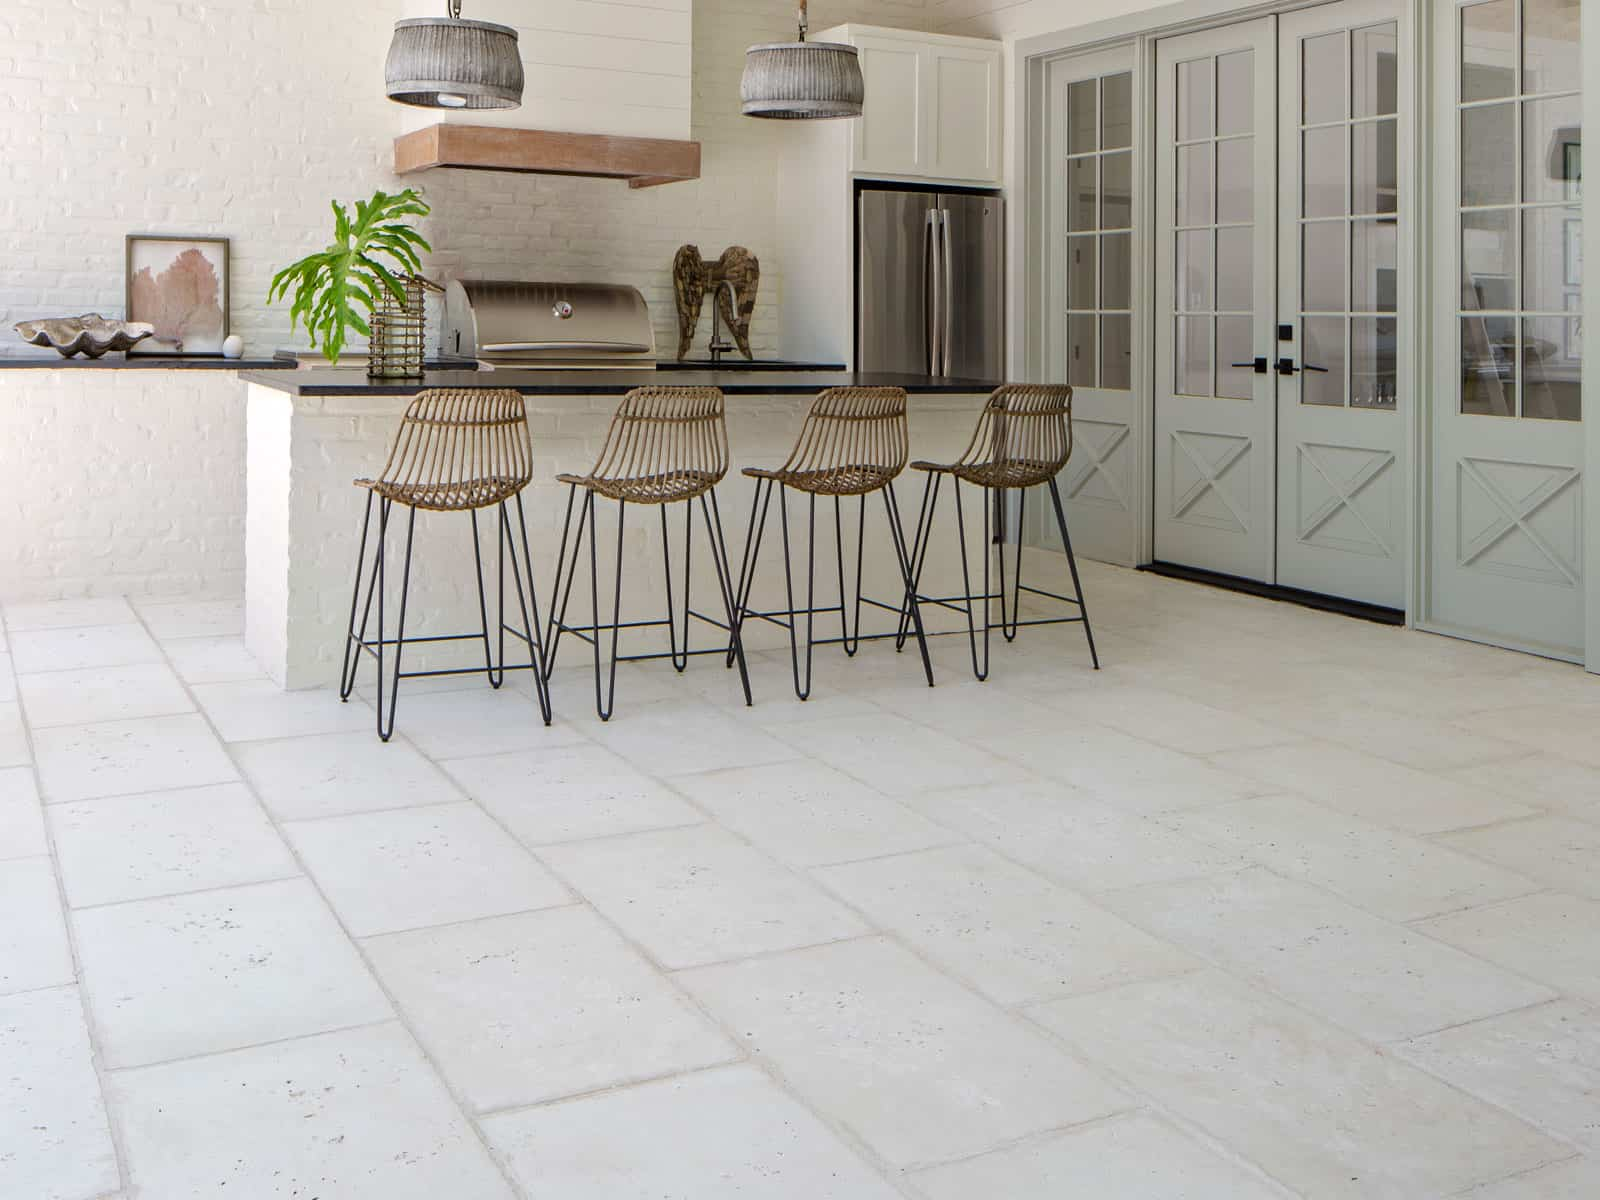 Outdoor Kitcken with Concrete Pavers